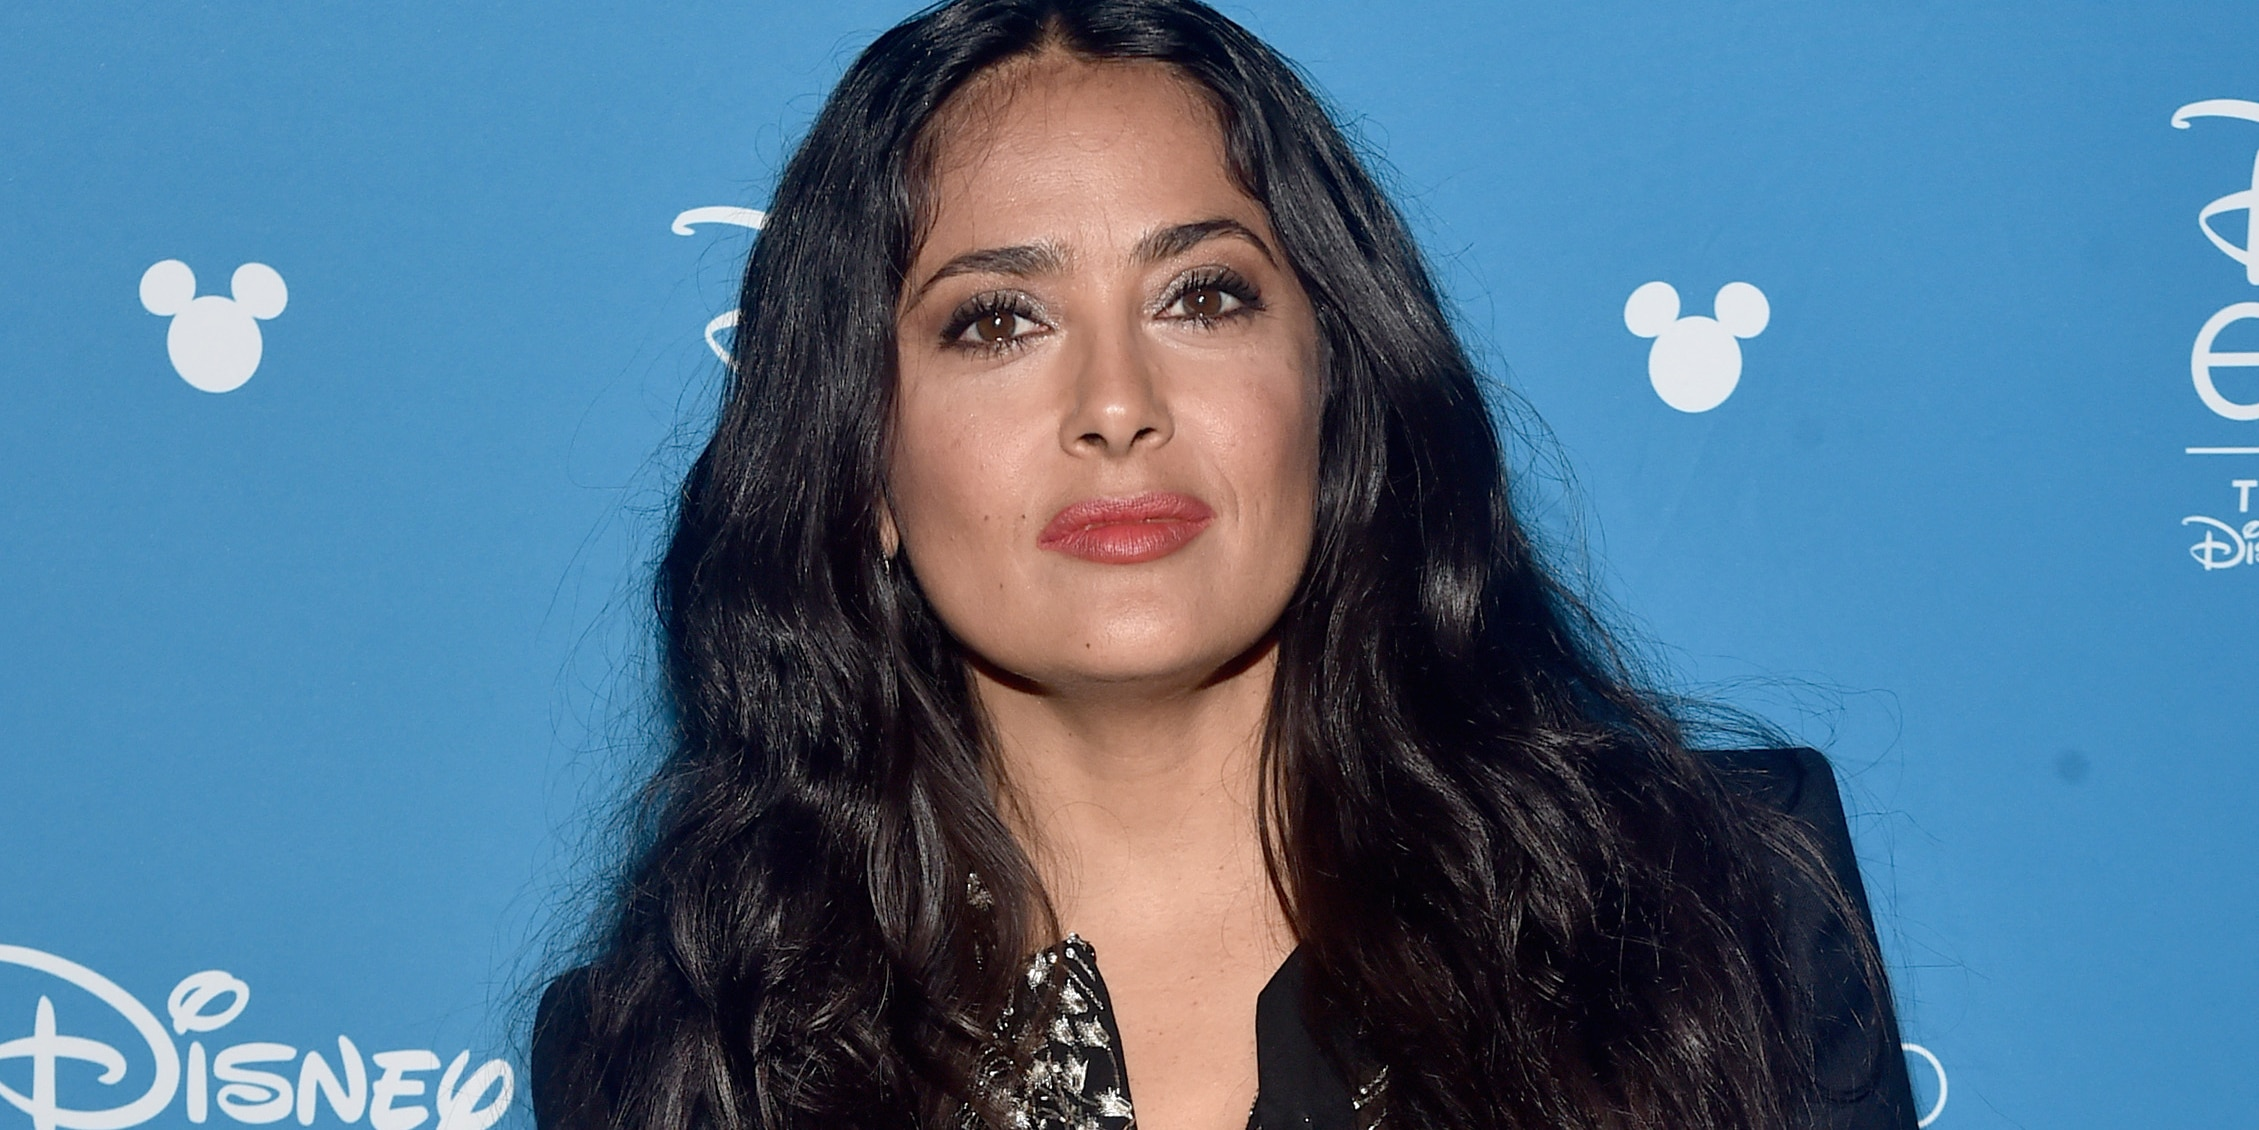 Salma Hayek celebrated her birthday back in September and revealed she doesn't mind aging gracefully.